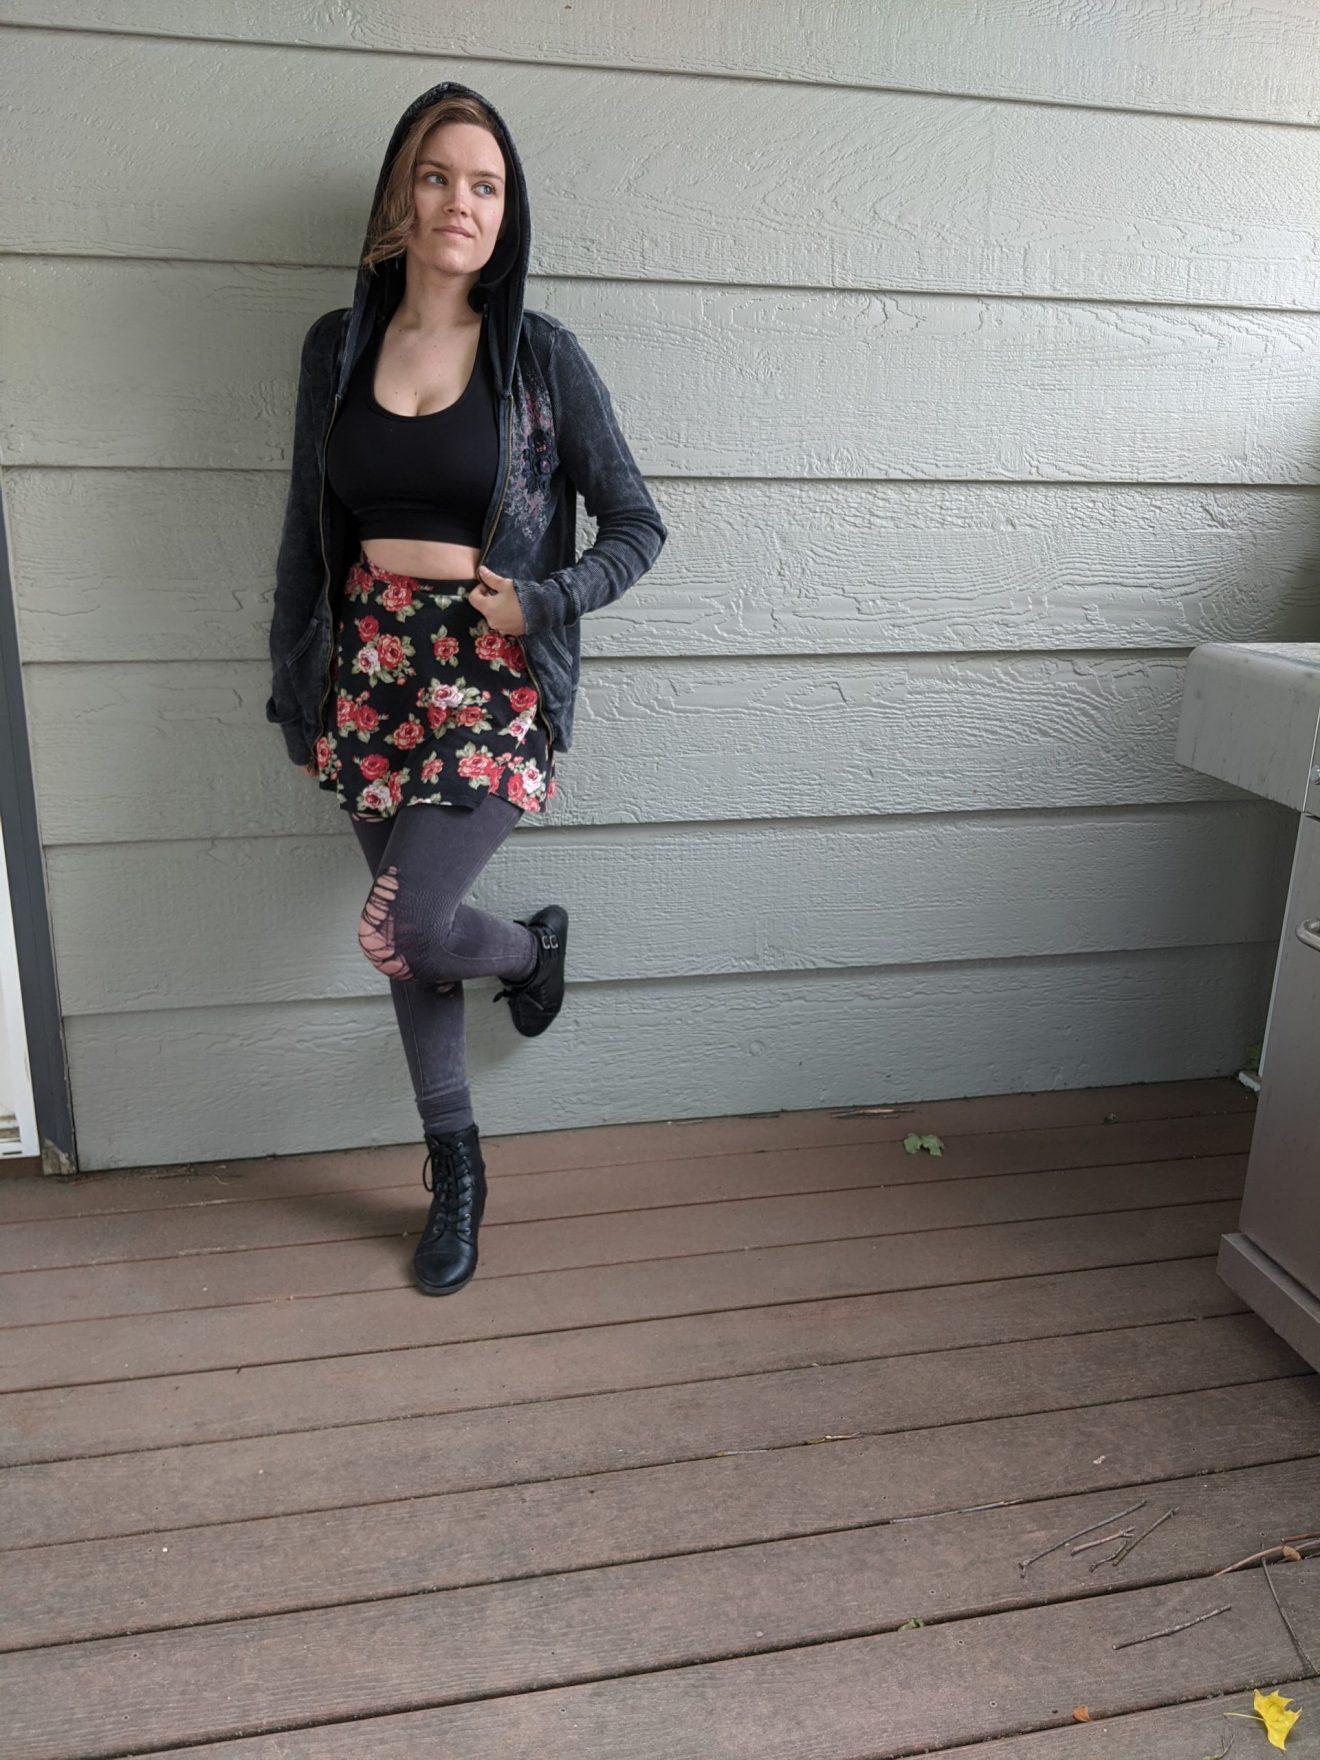 Beautiful Heartache Alissa Ackerman Story Behind The Cloth fashion blog edgy sporty romantic outfit 6 scaled